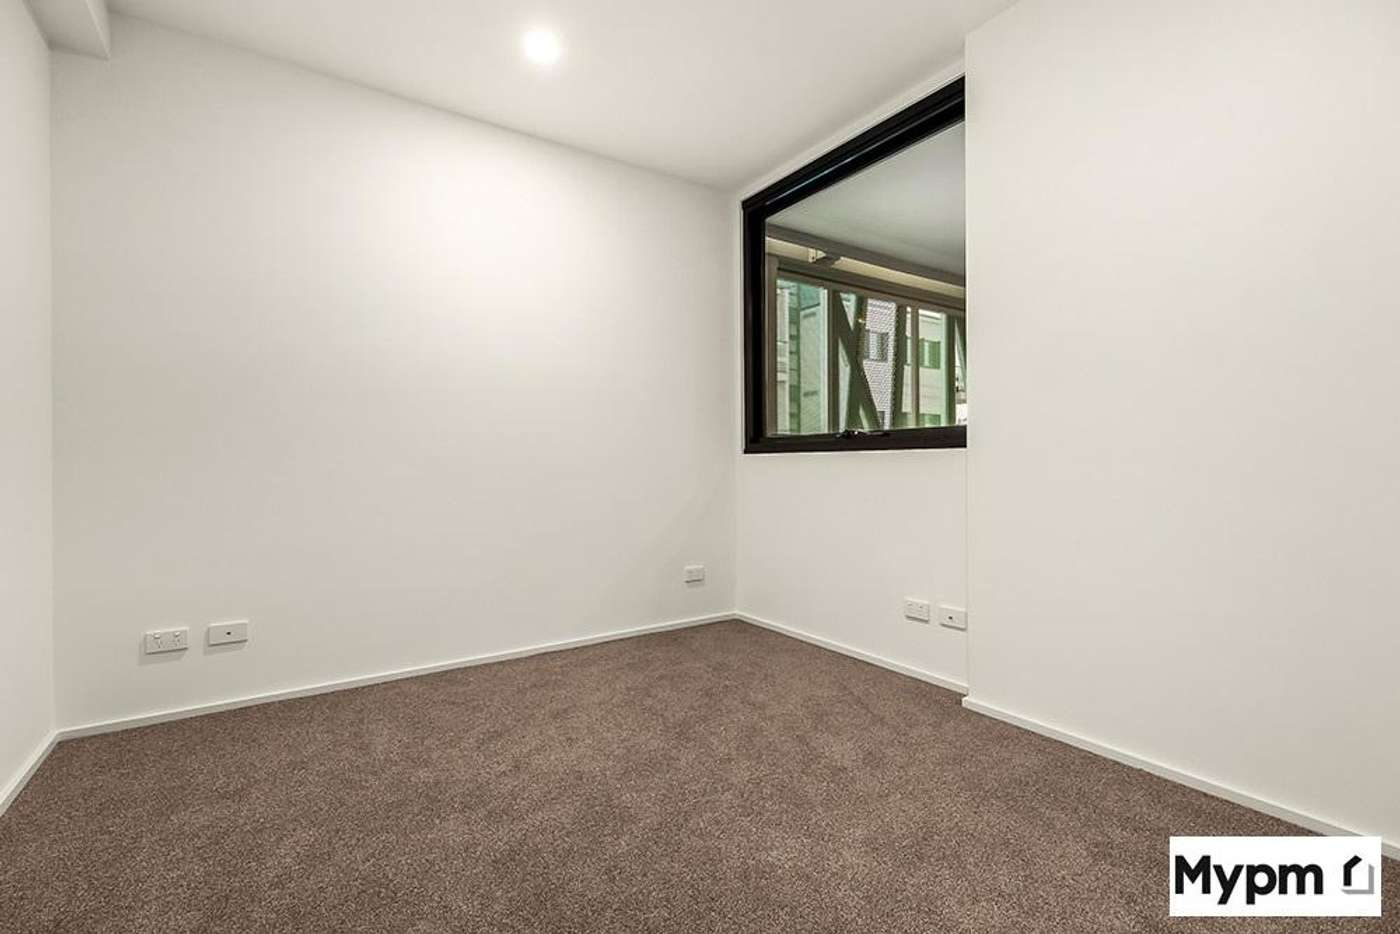 Fifth view of Homely apartment listing, 101/98 Nicholson Street, Brunswick East VIC 3057